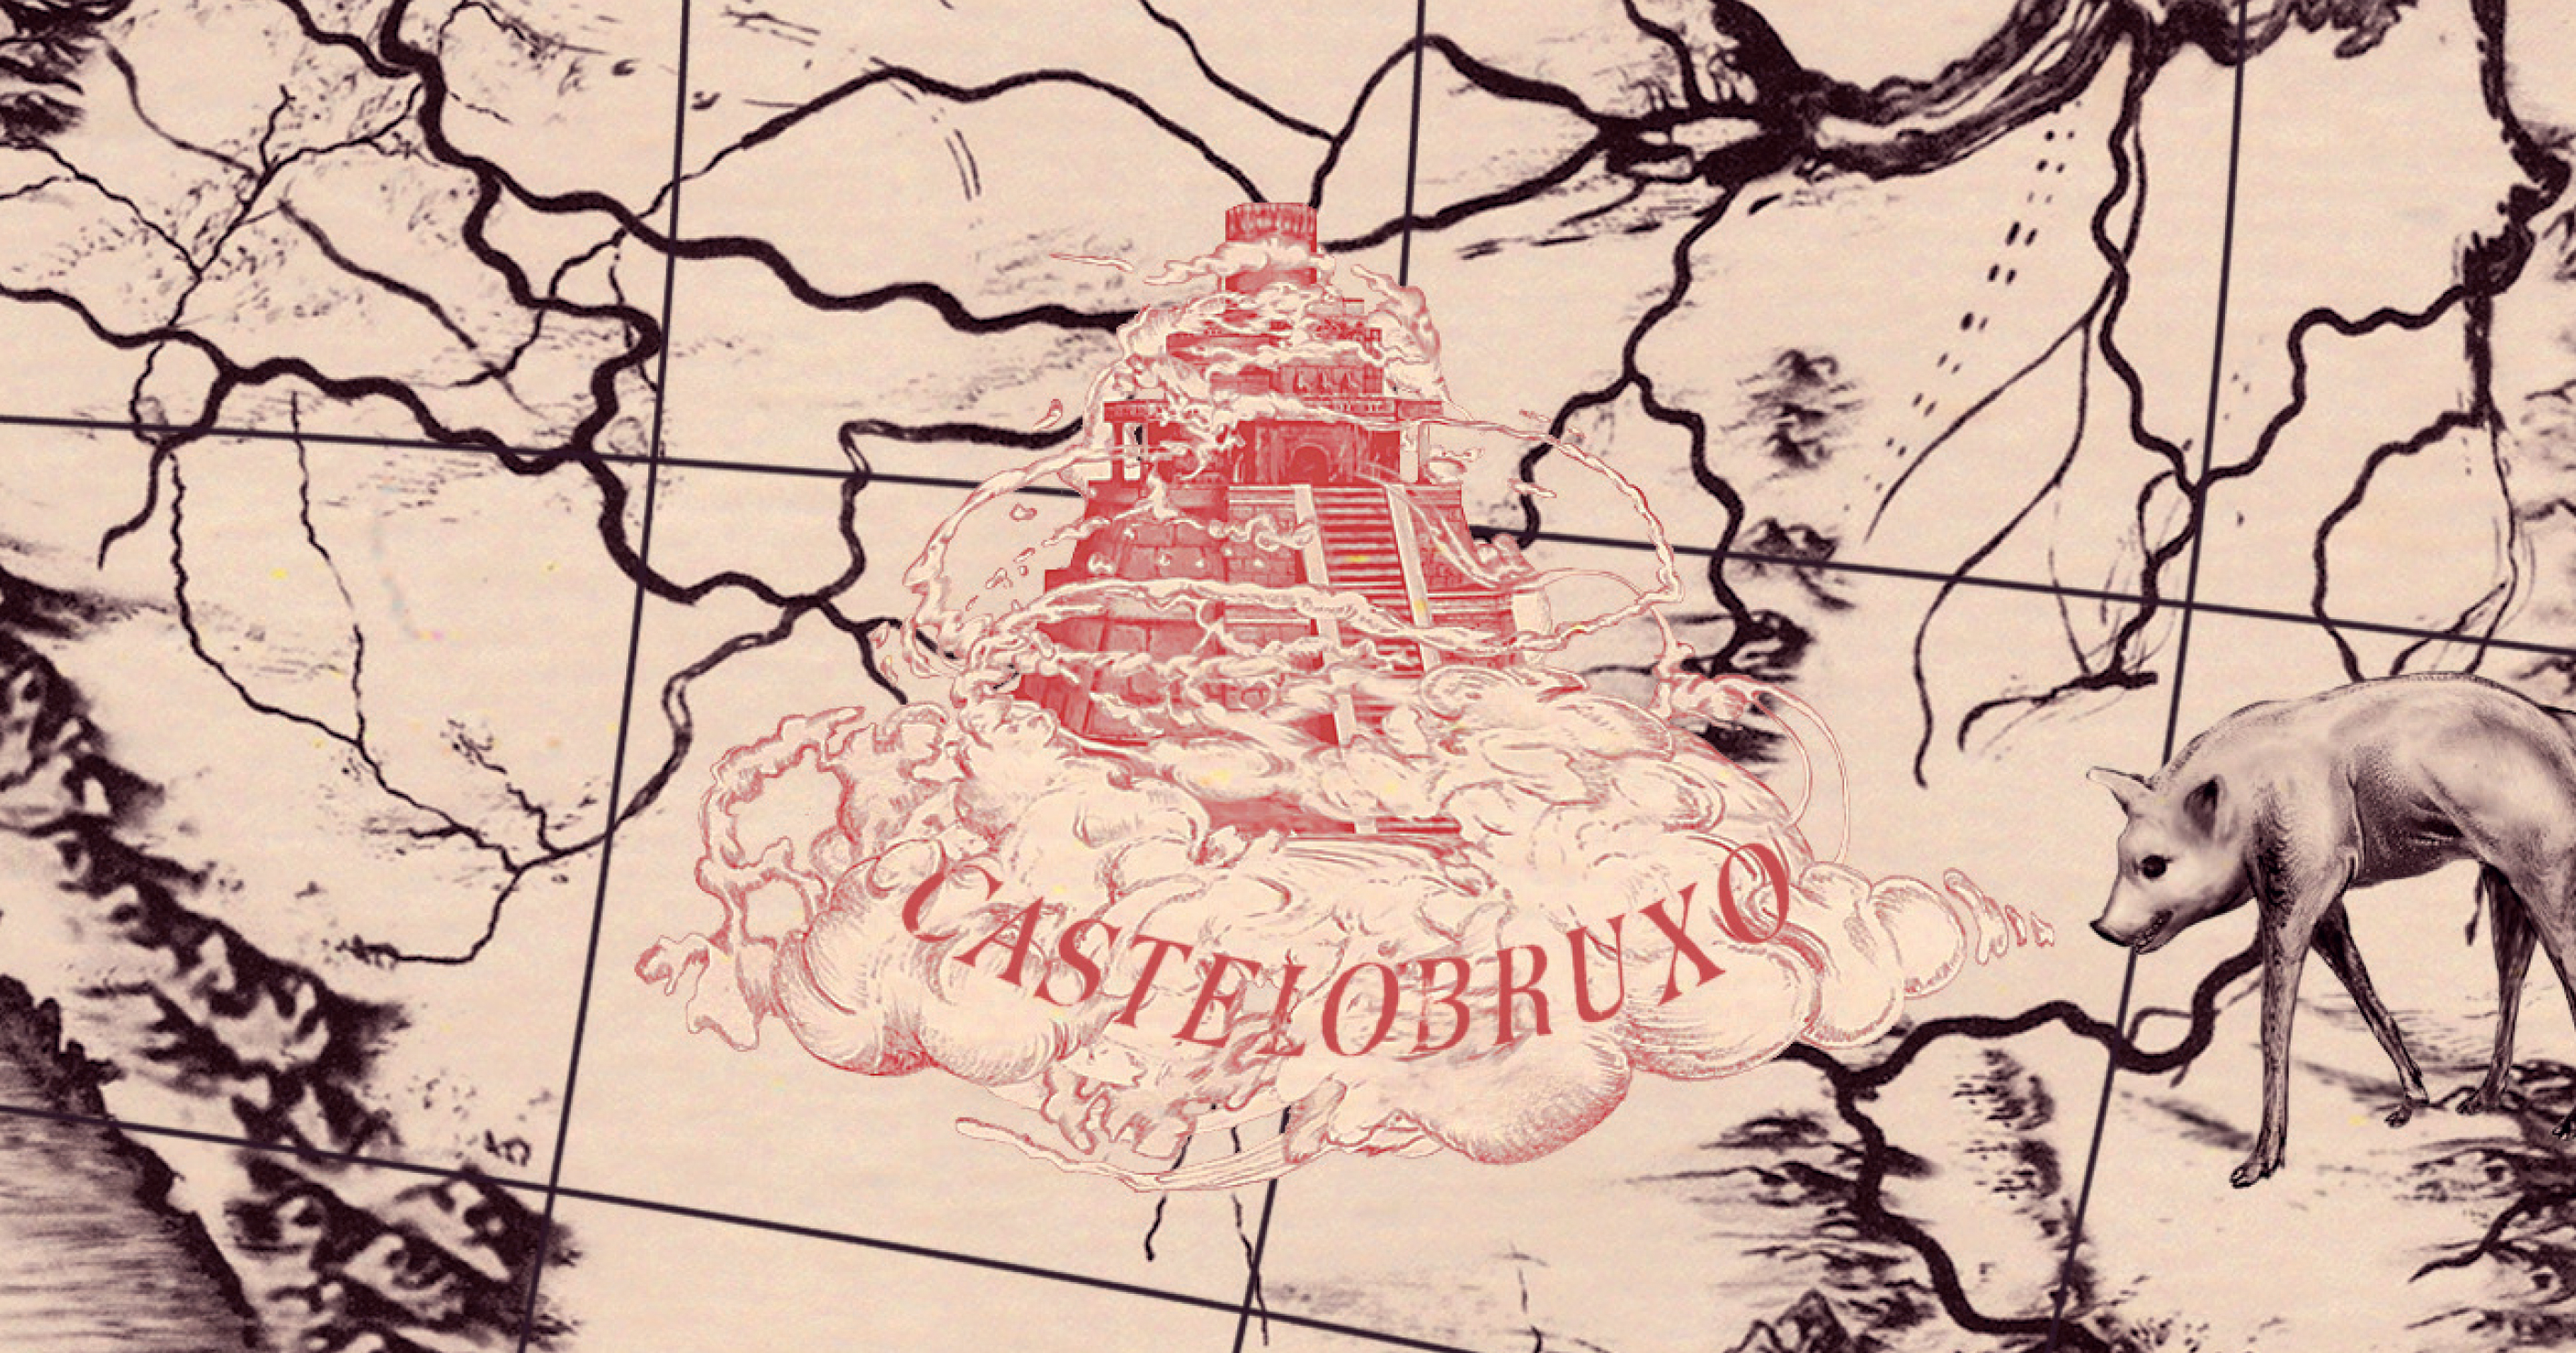 Wizarding School Castelobruxo with name